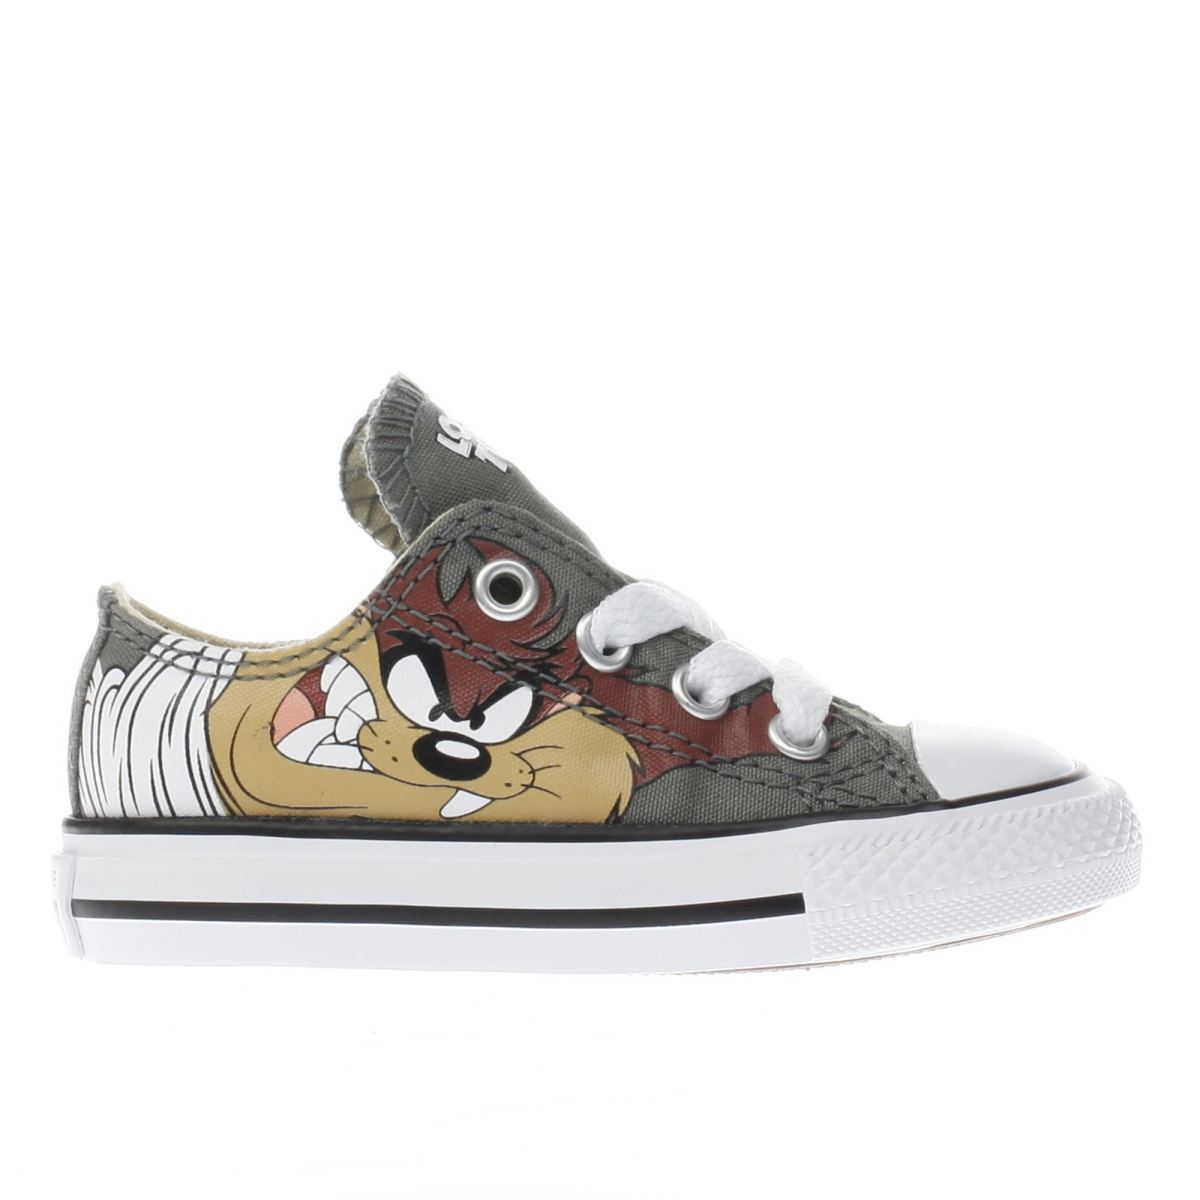 converse khaki looney tunes taz Toddler Trainers